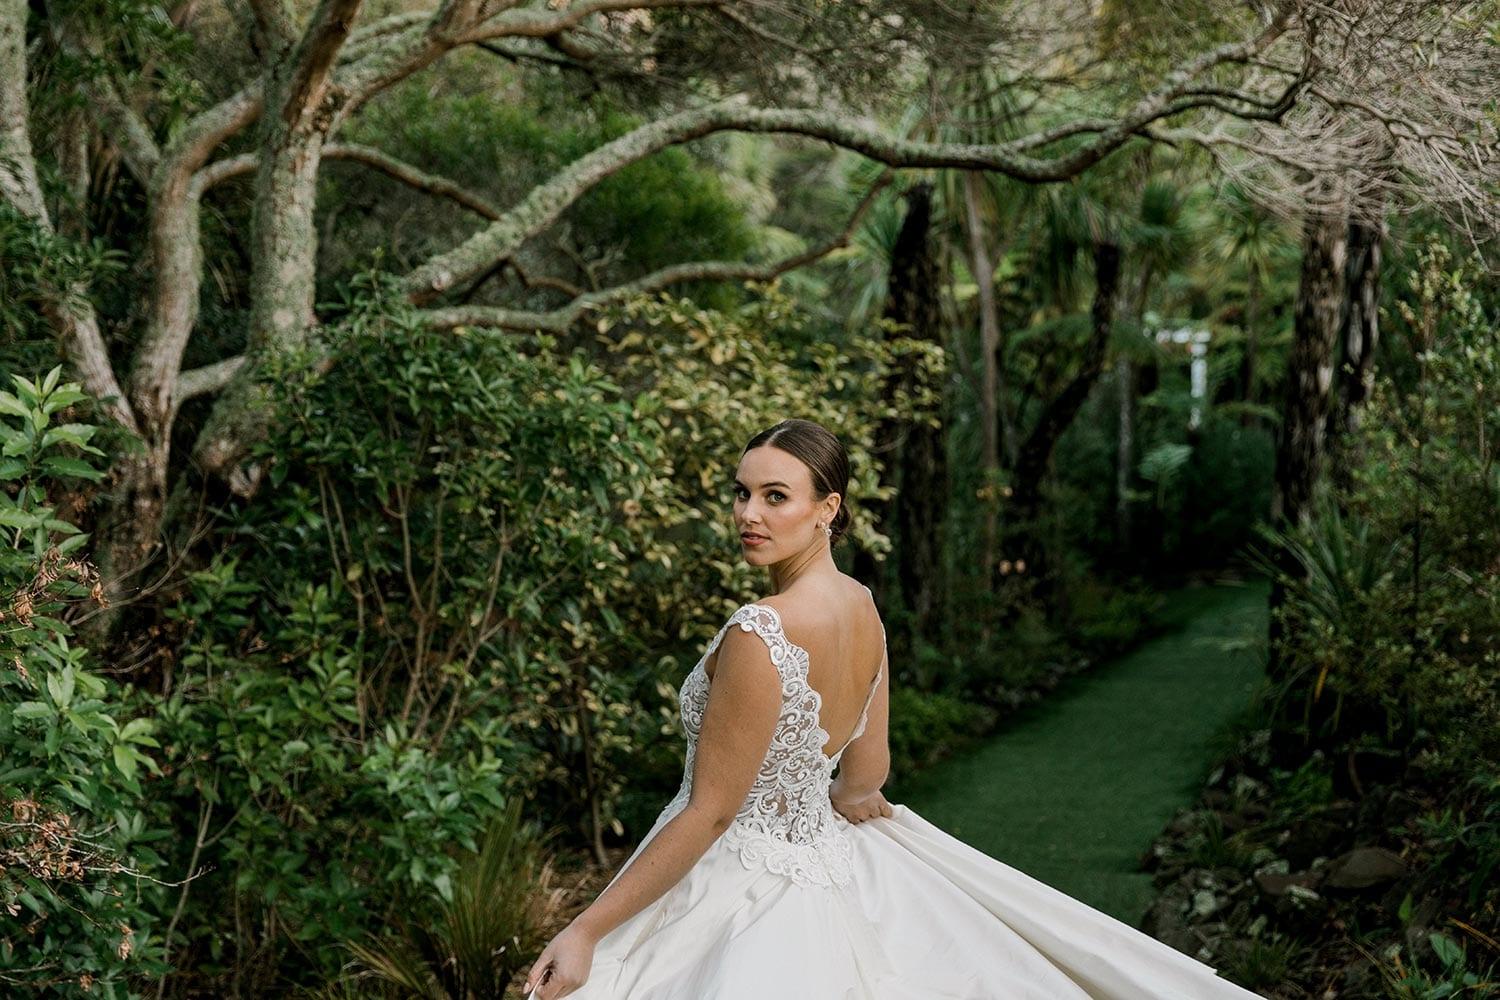 Ashleigh Wedding Dress from Vinka Design. Wedding dress with semi-sheer, richly embroidered fitted bodice on a nude base adorned with guipure lace. Dramatic silk dupion full skirt with side pockets. Dress from side with skirt held out, photographed at Tui Hills by Emmaline Photography.